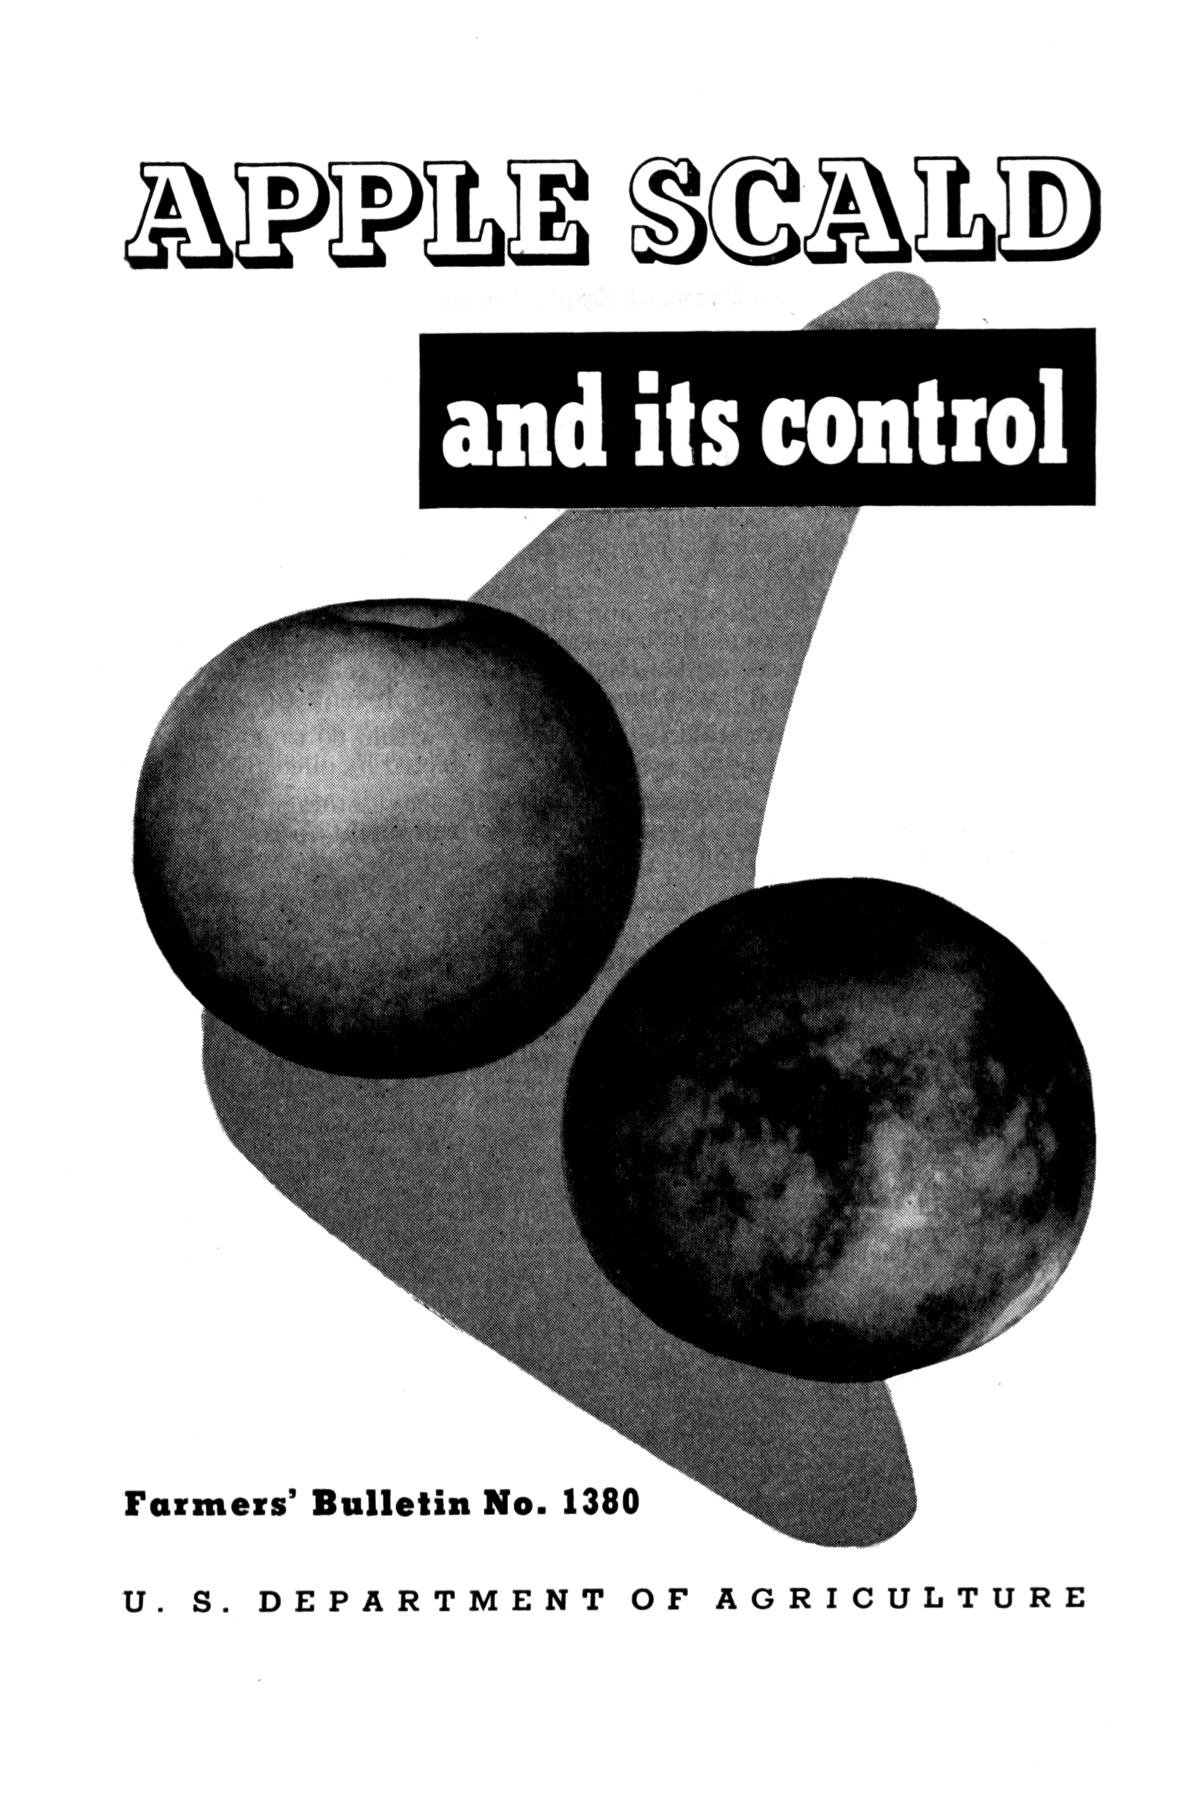 Apple scald and its control.                                                                                                      Front Cover